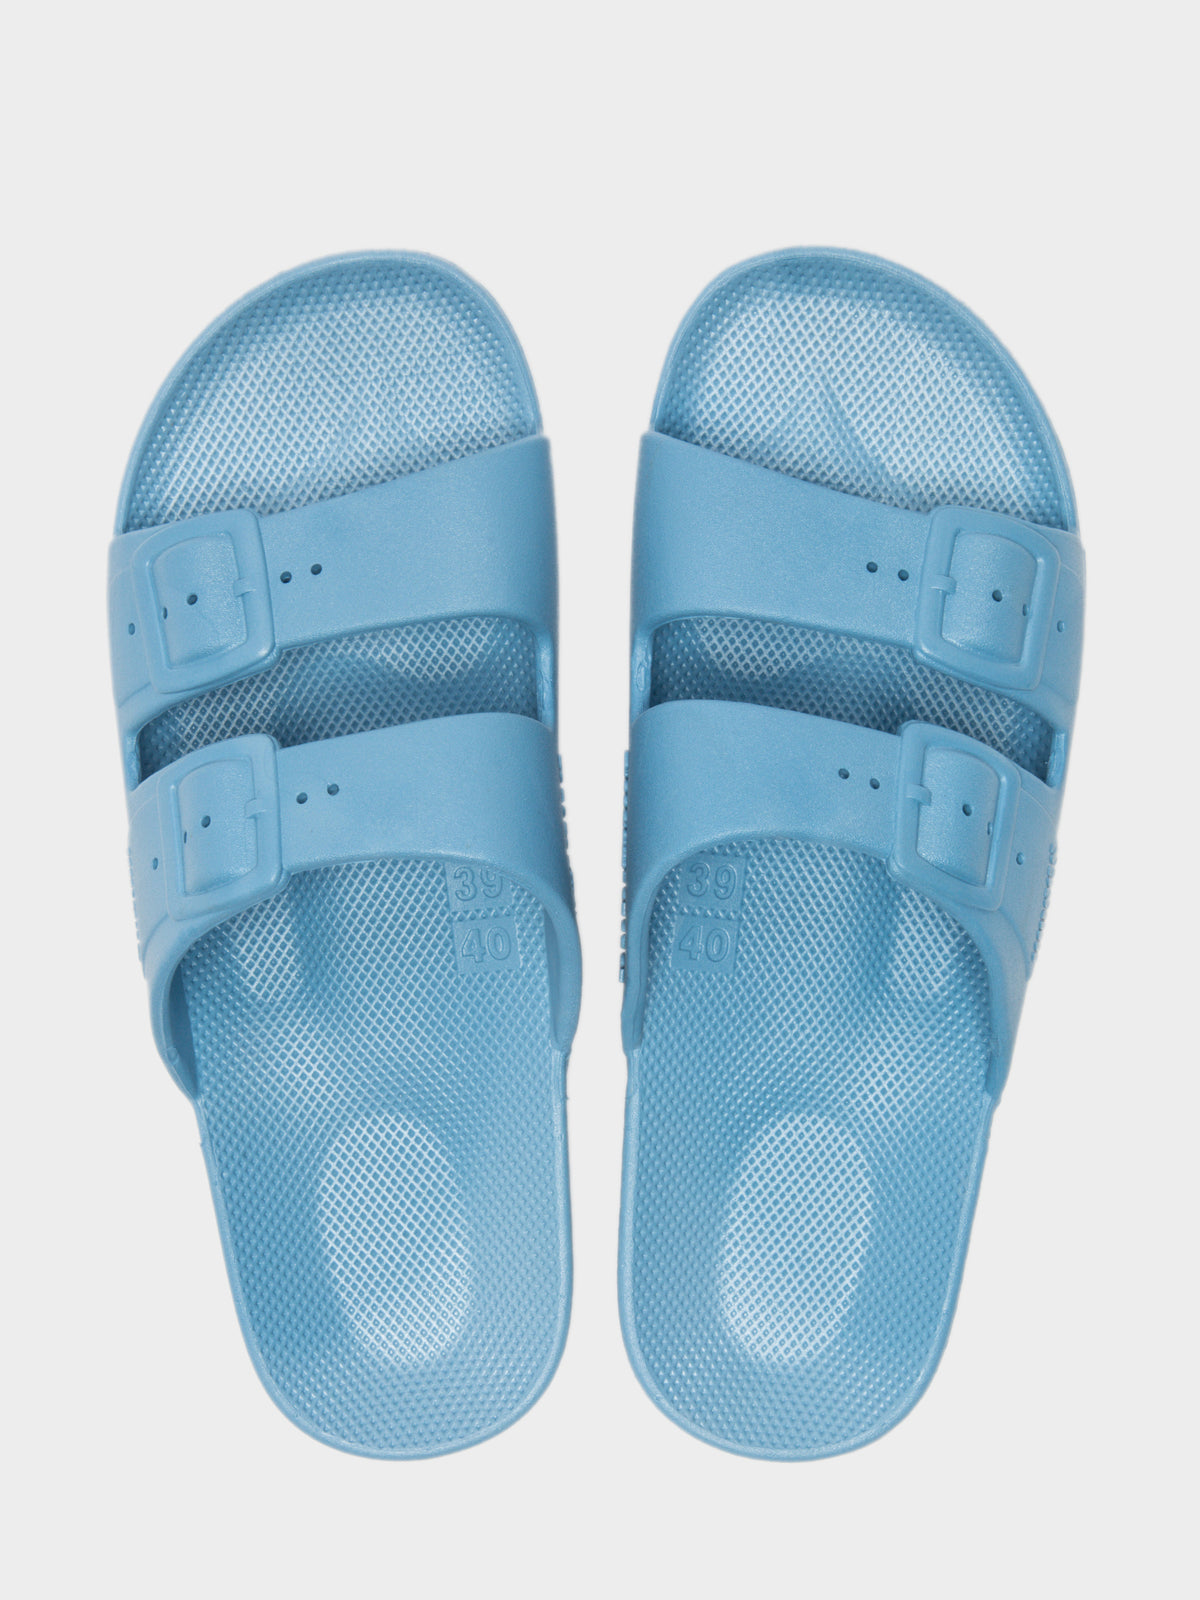 Unisex Freedom Moses Slides in Lagoon Blue